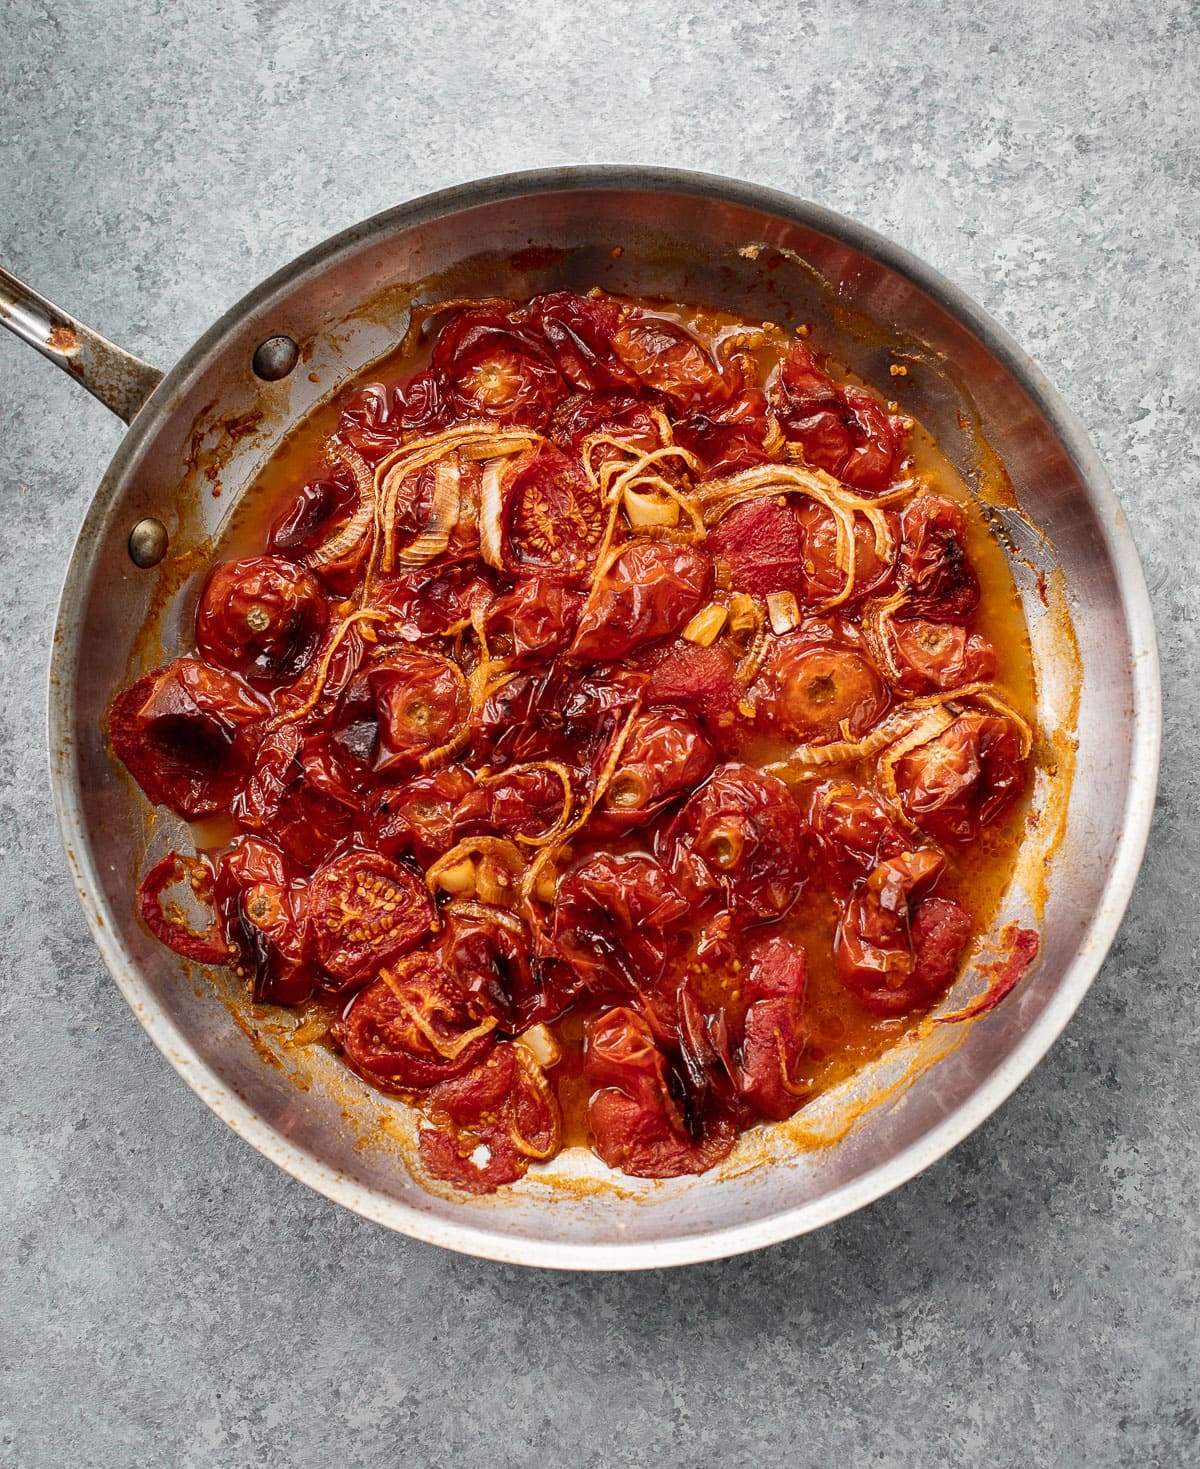 Roasted tomatoes for creamy, dairy-free tomato soup